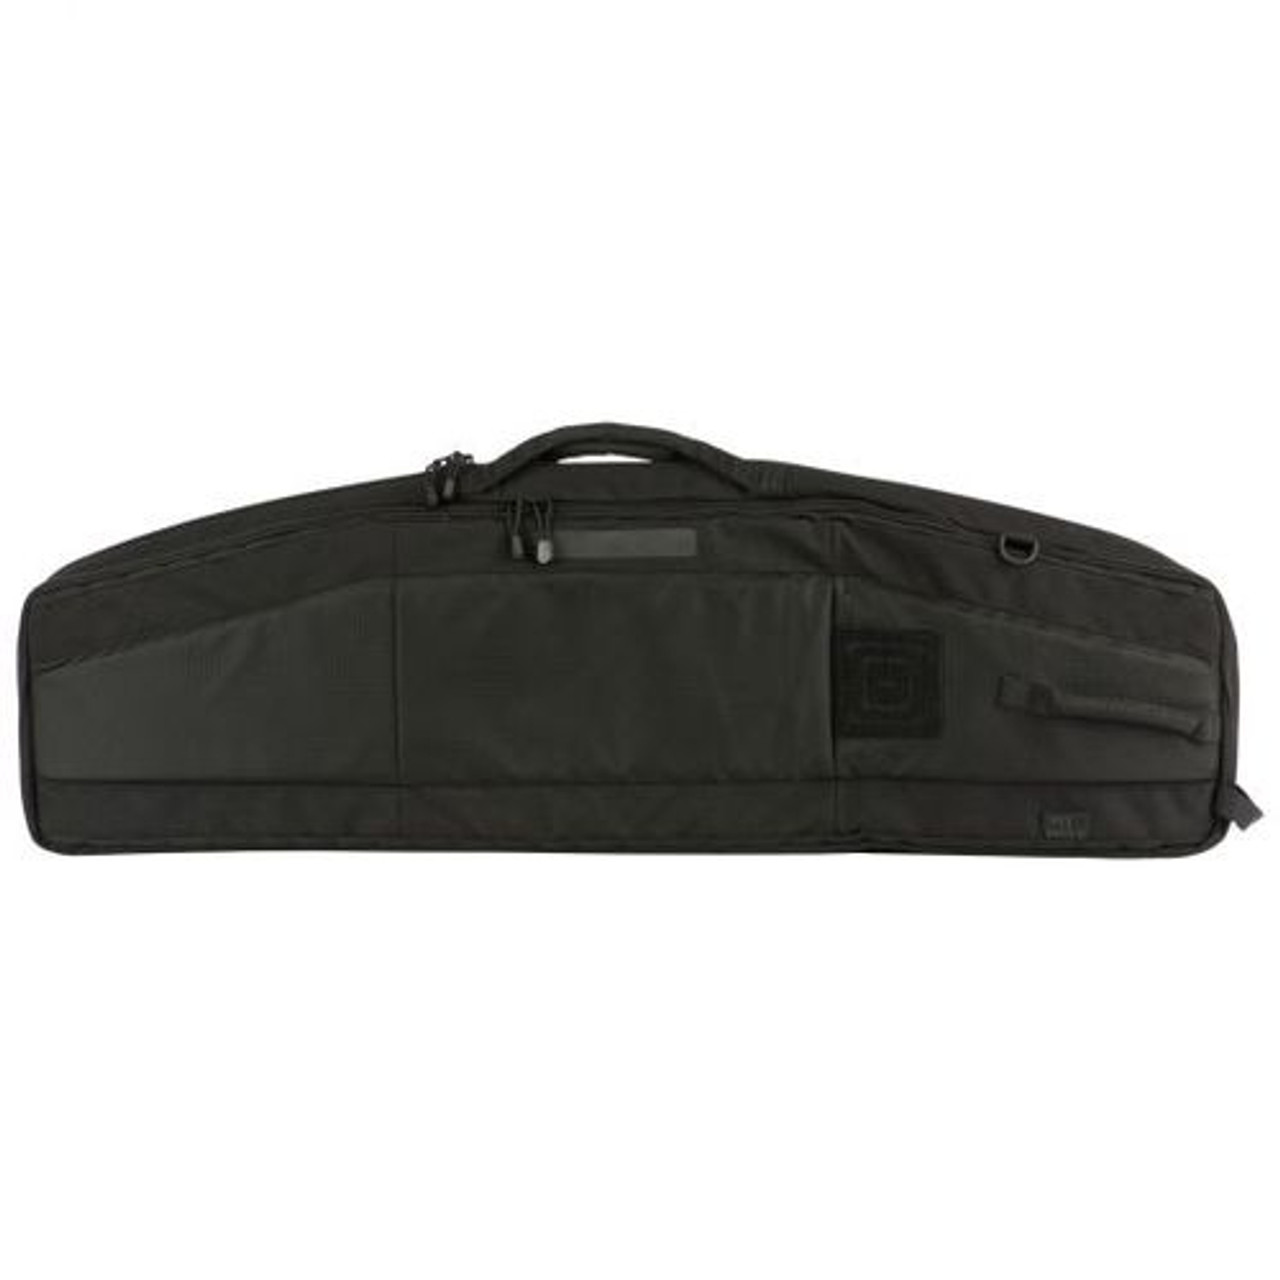 "5.11 Tactical 50"" Urban Sniper Bag, Soft Case, Durable, water-resistant shell, 15 mm closed-cell foam for protection, and zippers that open fully to serve as a shooting mat, 56225"